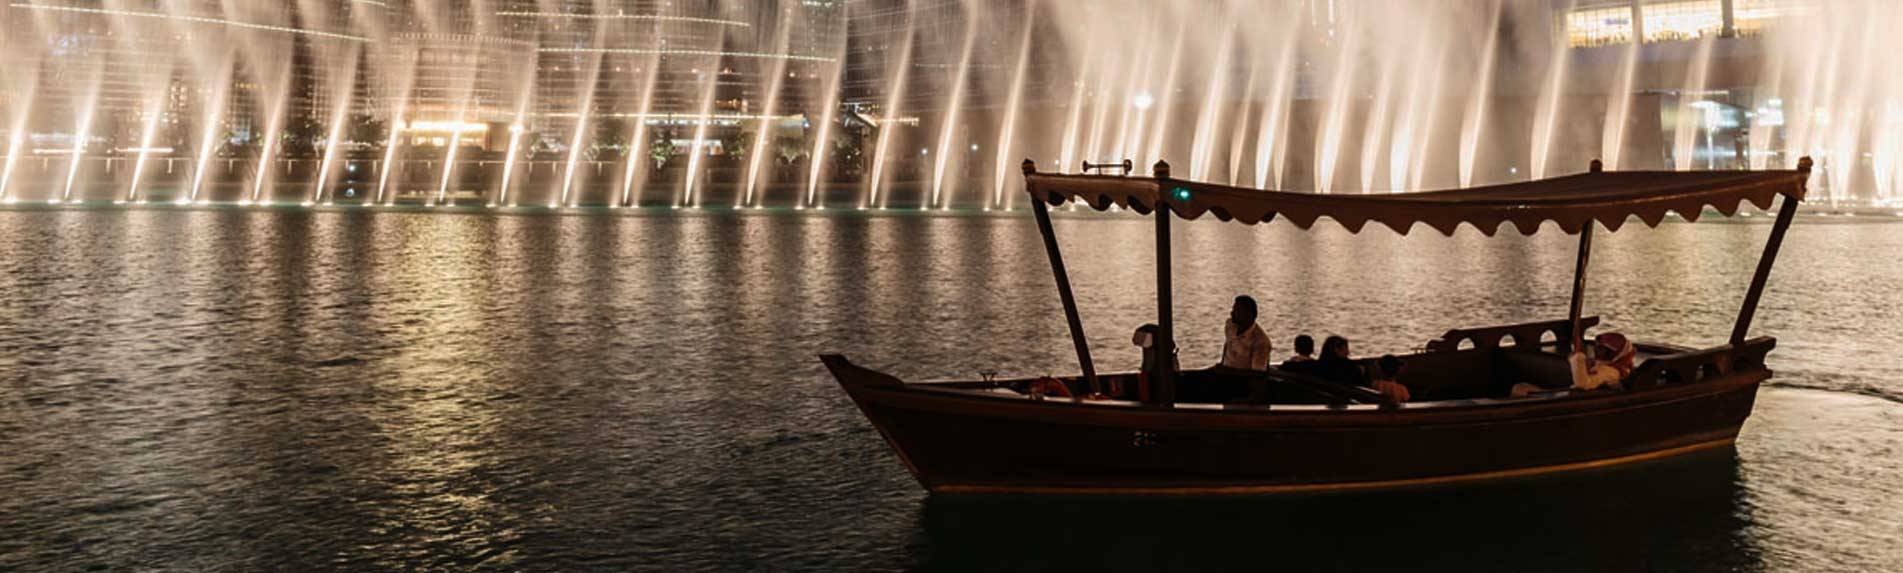 Dubai-Fountain-Lake-Ride-from-Abu-Dhabi